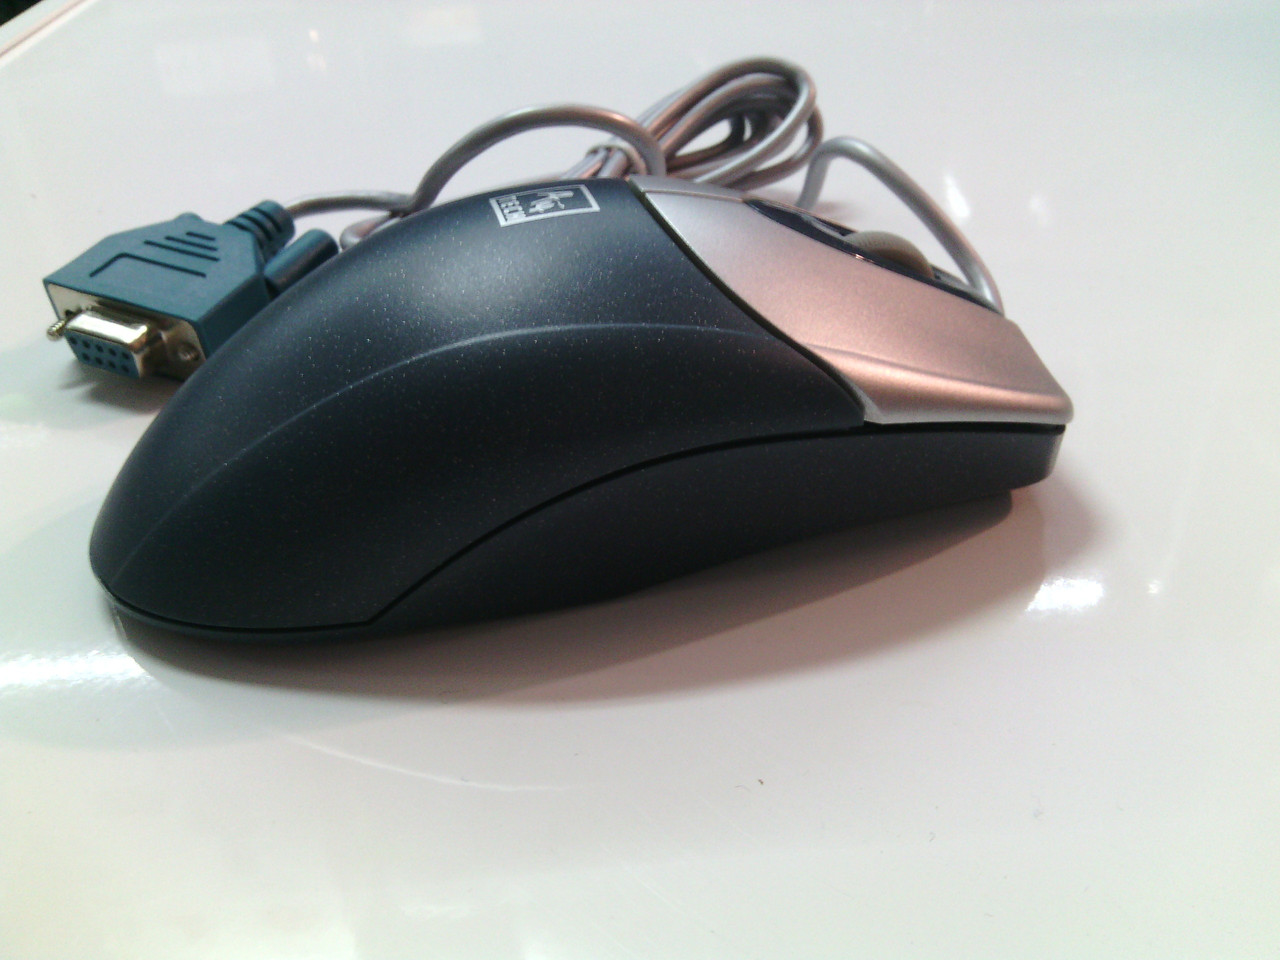 A4TECH SWW-25 MOUSE DRIVER FOR WINDOWS MAC